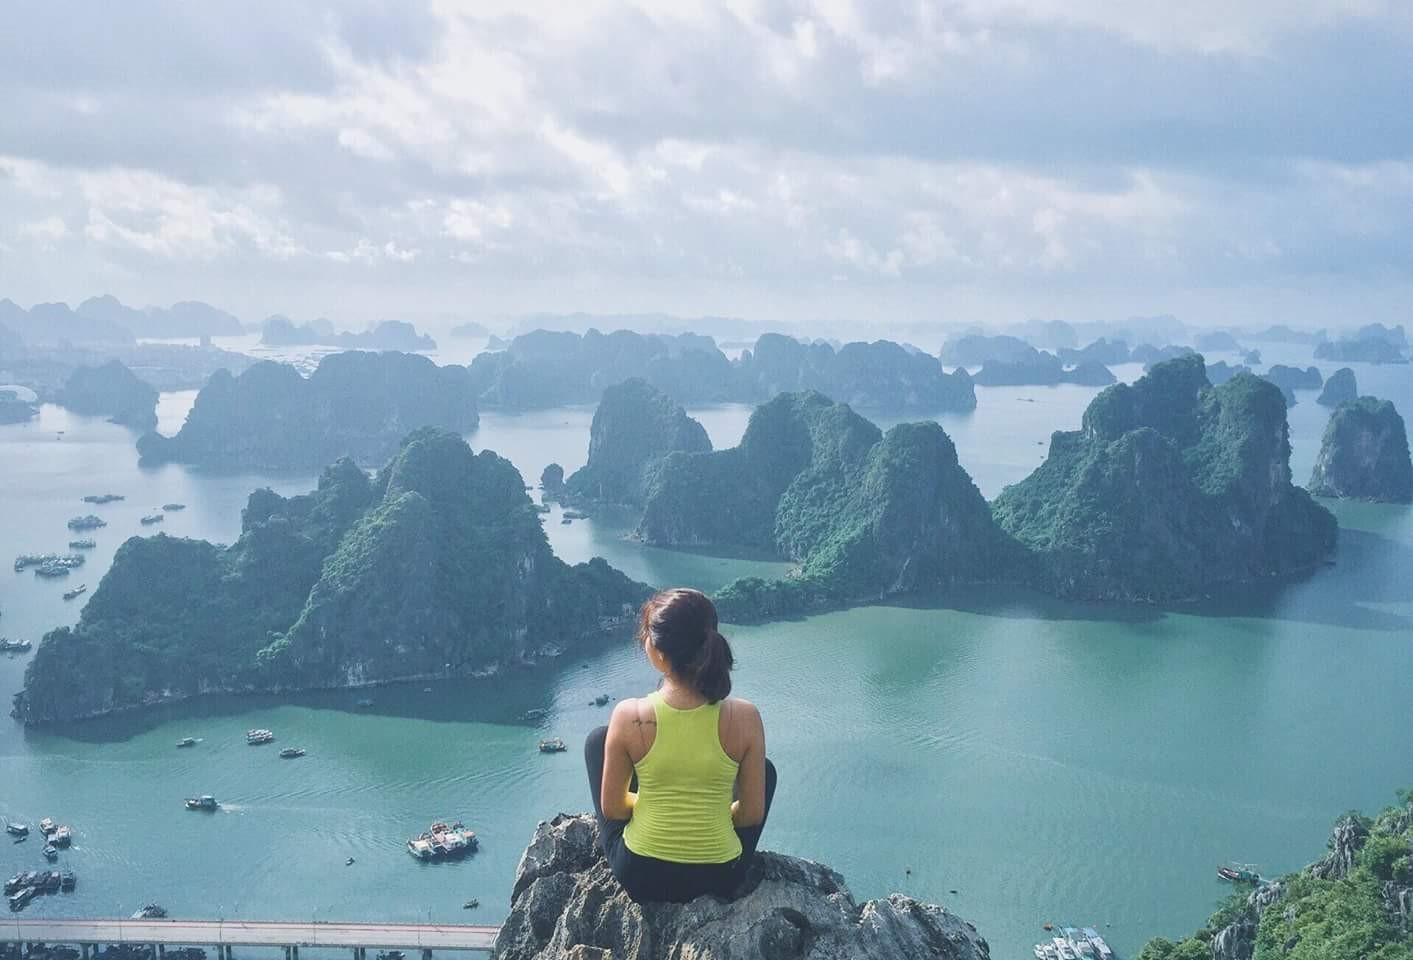 Viewing Ha Long Bay from the peak of Bai Tho city